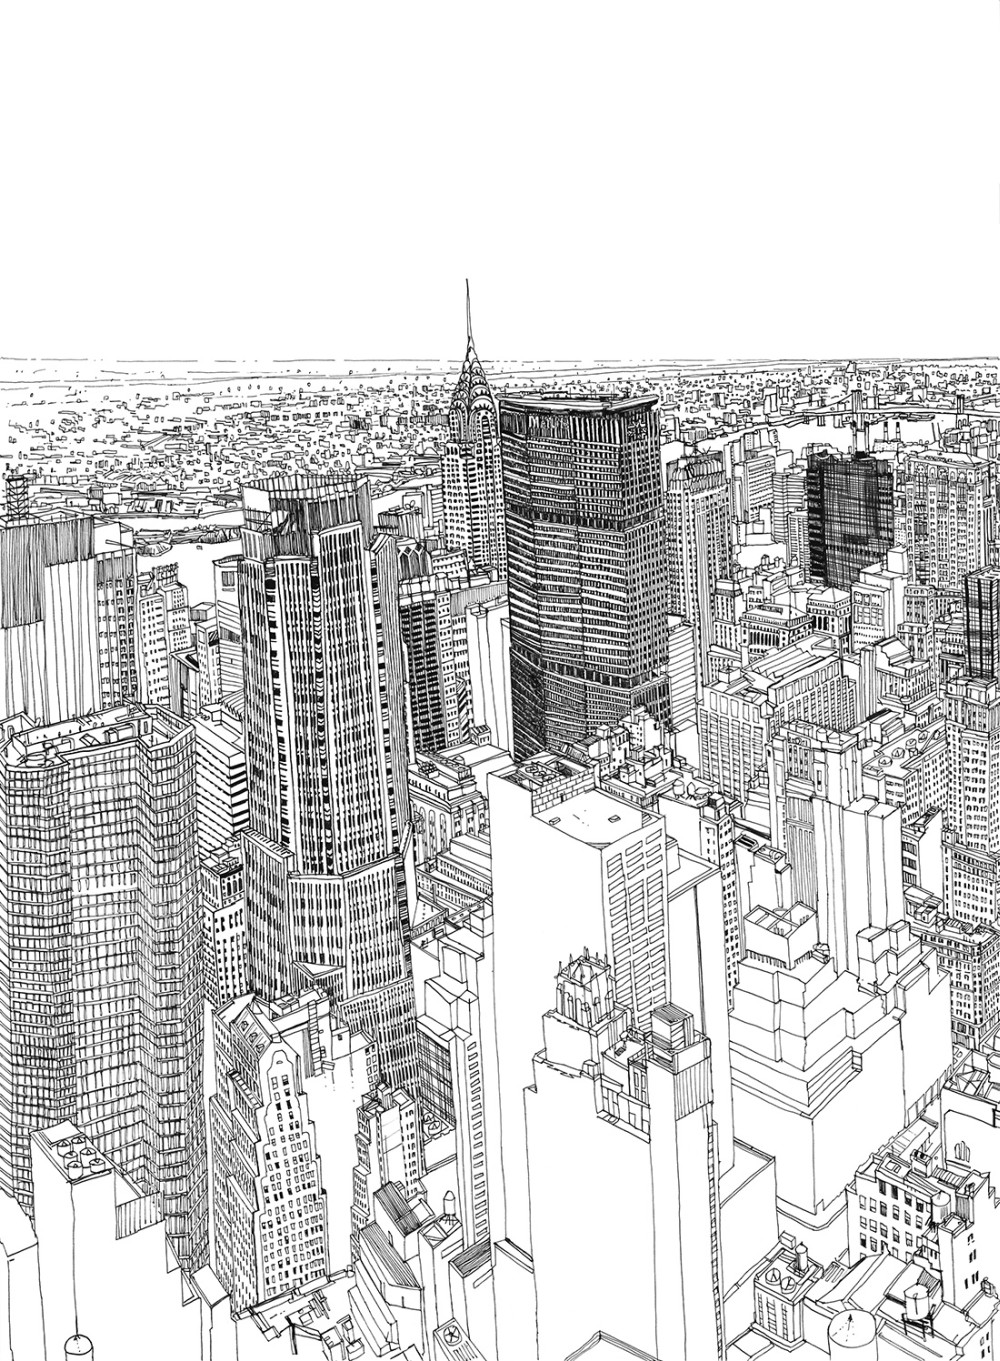 Patrick-Vale-Drawing-New-York-Skyline-123abc